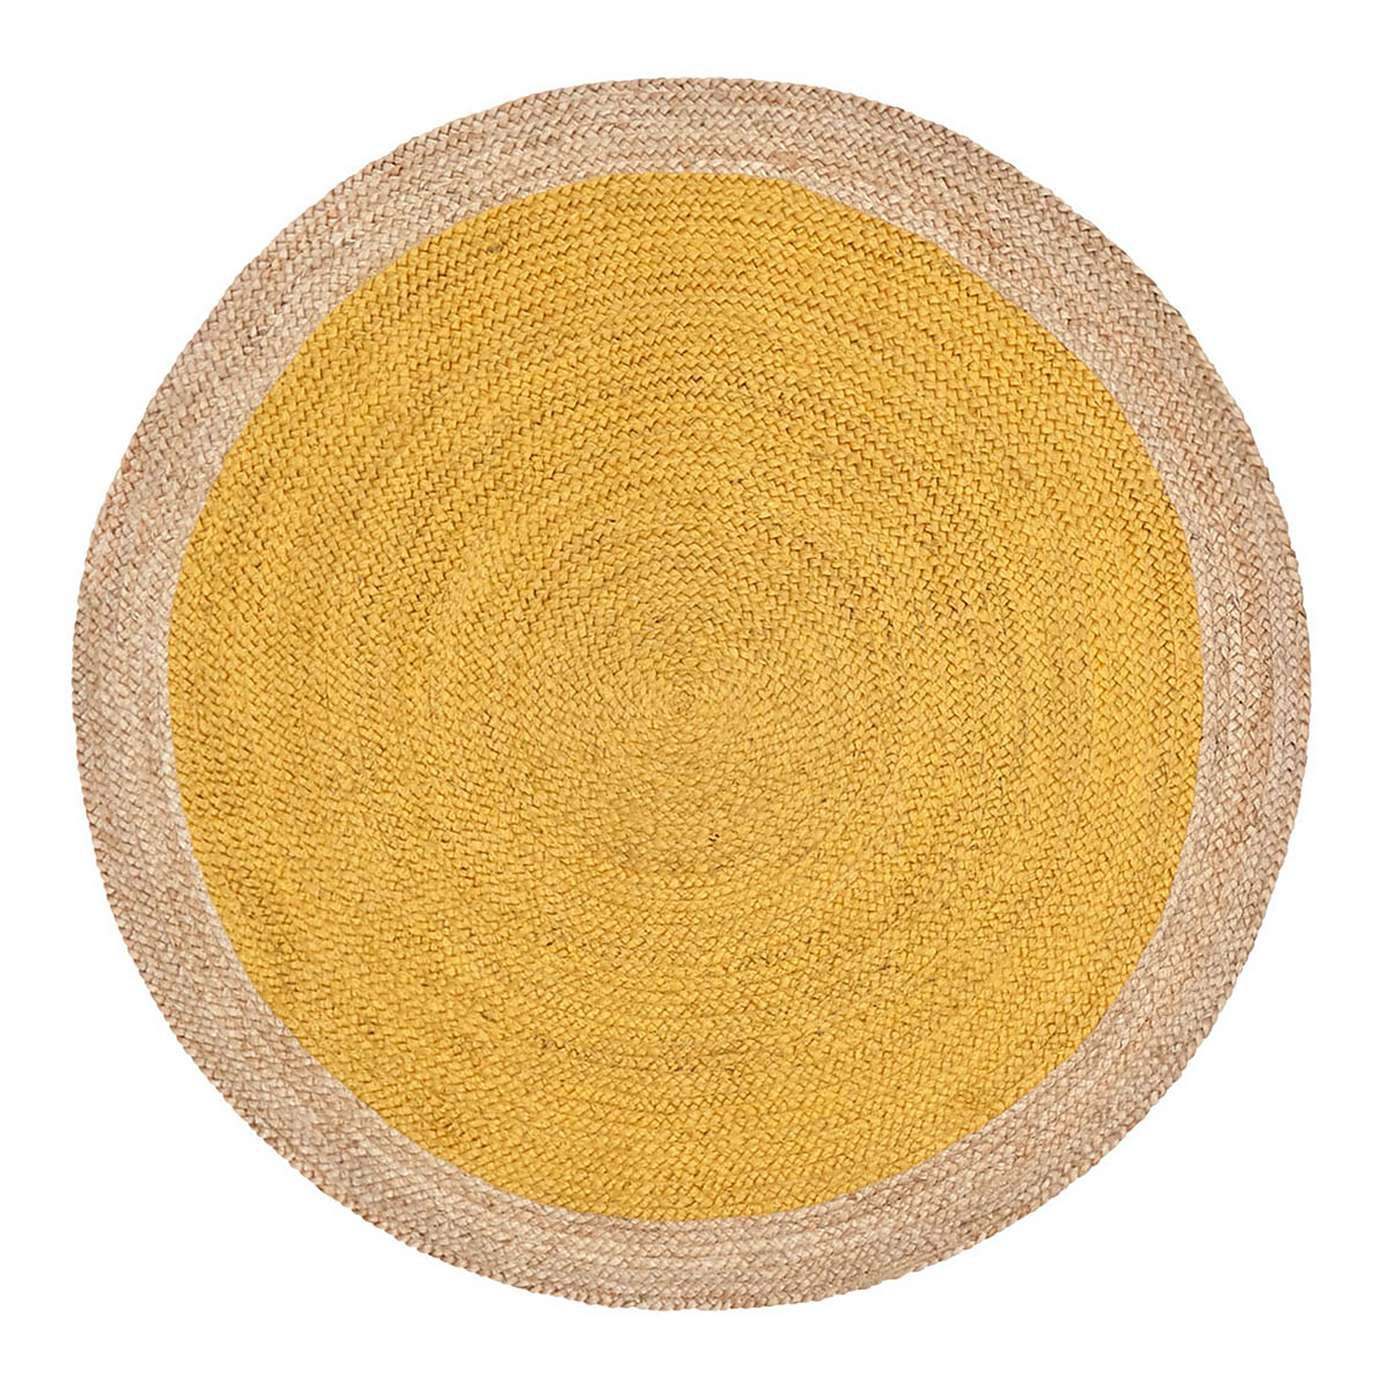 Bahama Yellow Round Jute Rug In 2020